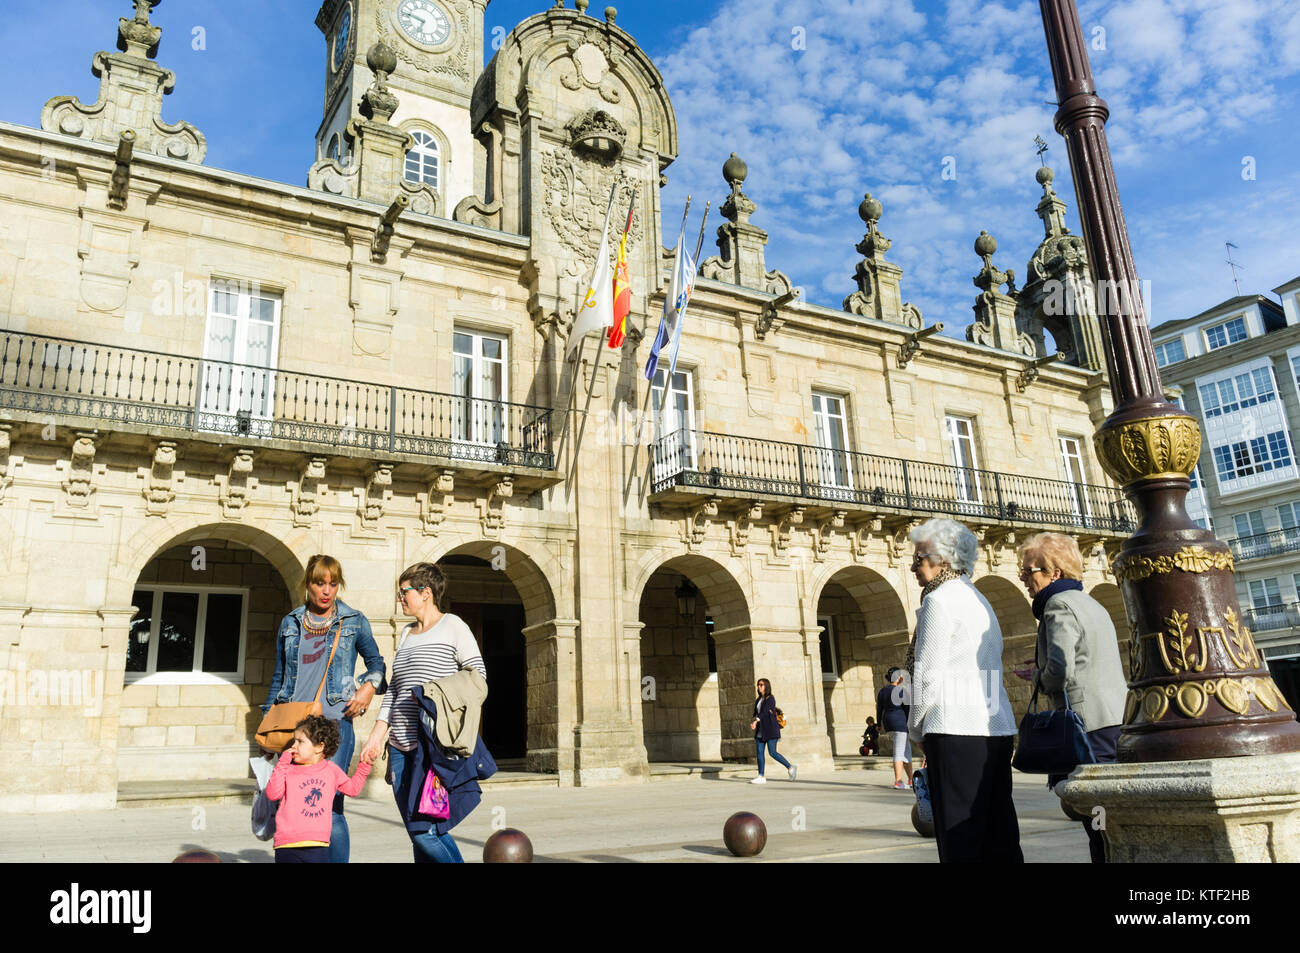 People by the Baroque 18th c. City Hall building at Praza Maior square in Lugo city, Galicia, Spain, Europe - Stock Image